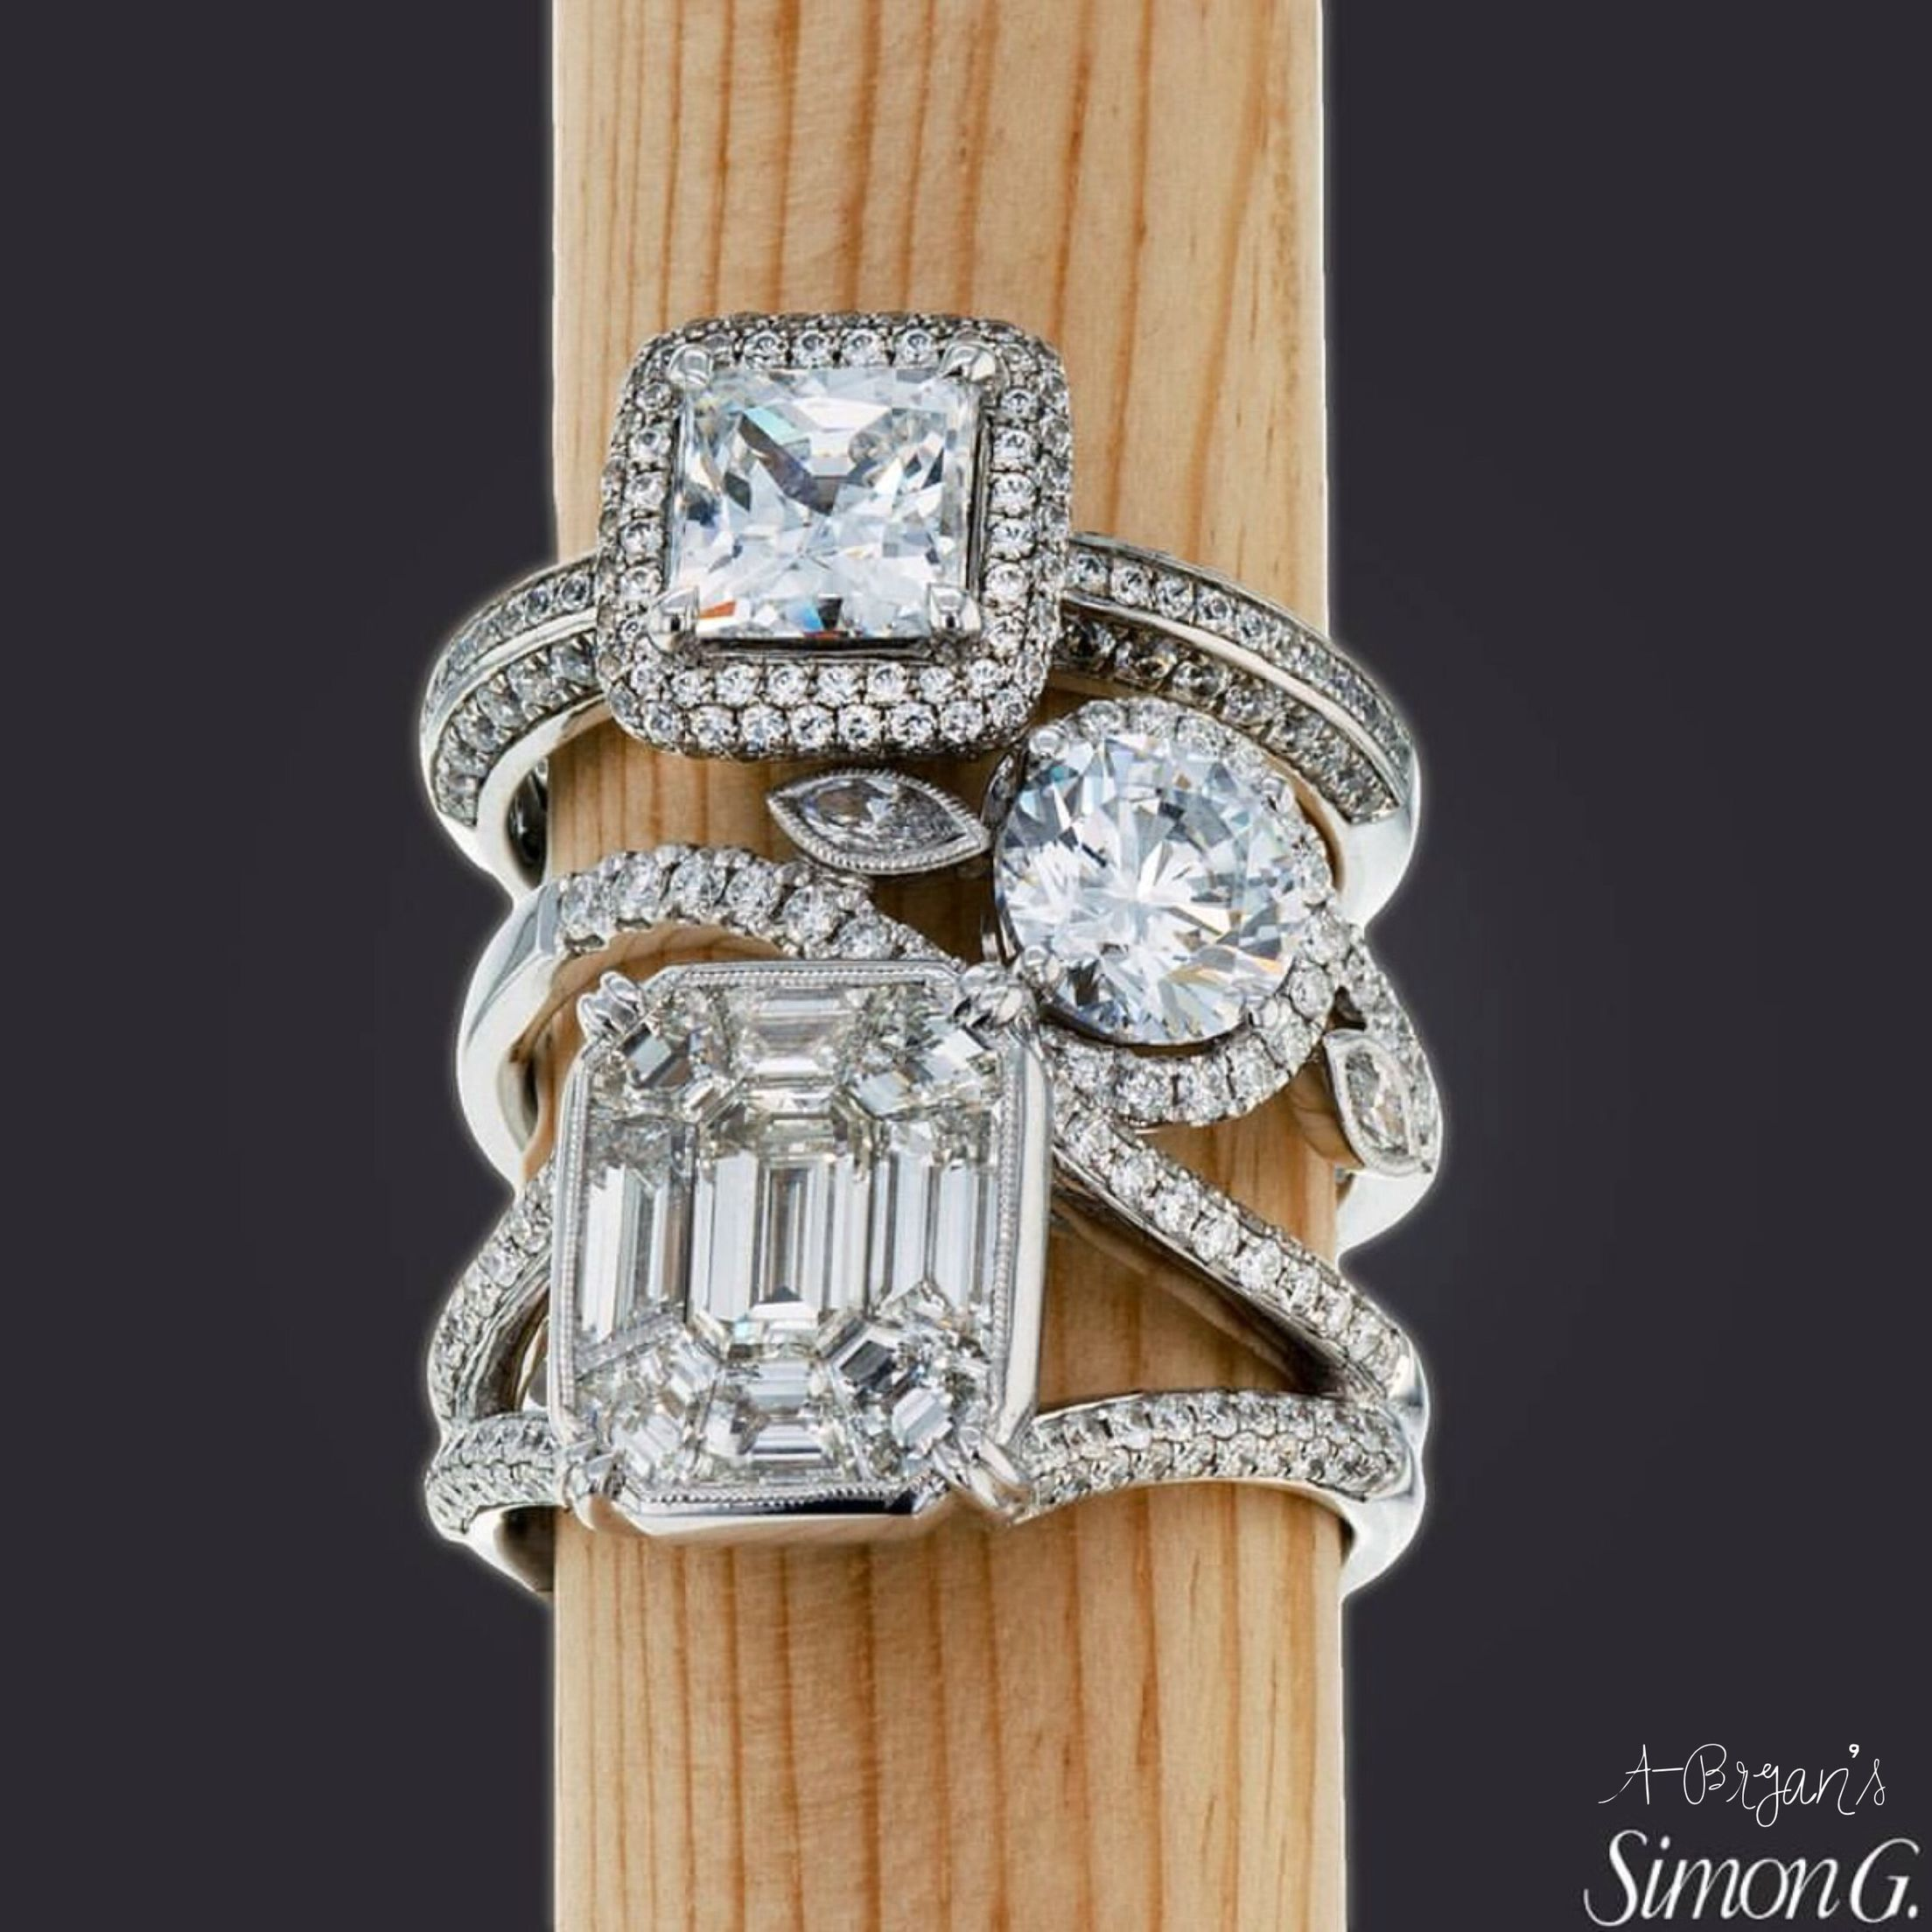 f right tashne diamond rings simon g engagement mosaic by ring jewels product ladies hand